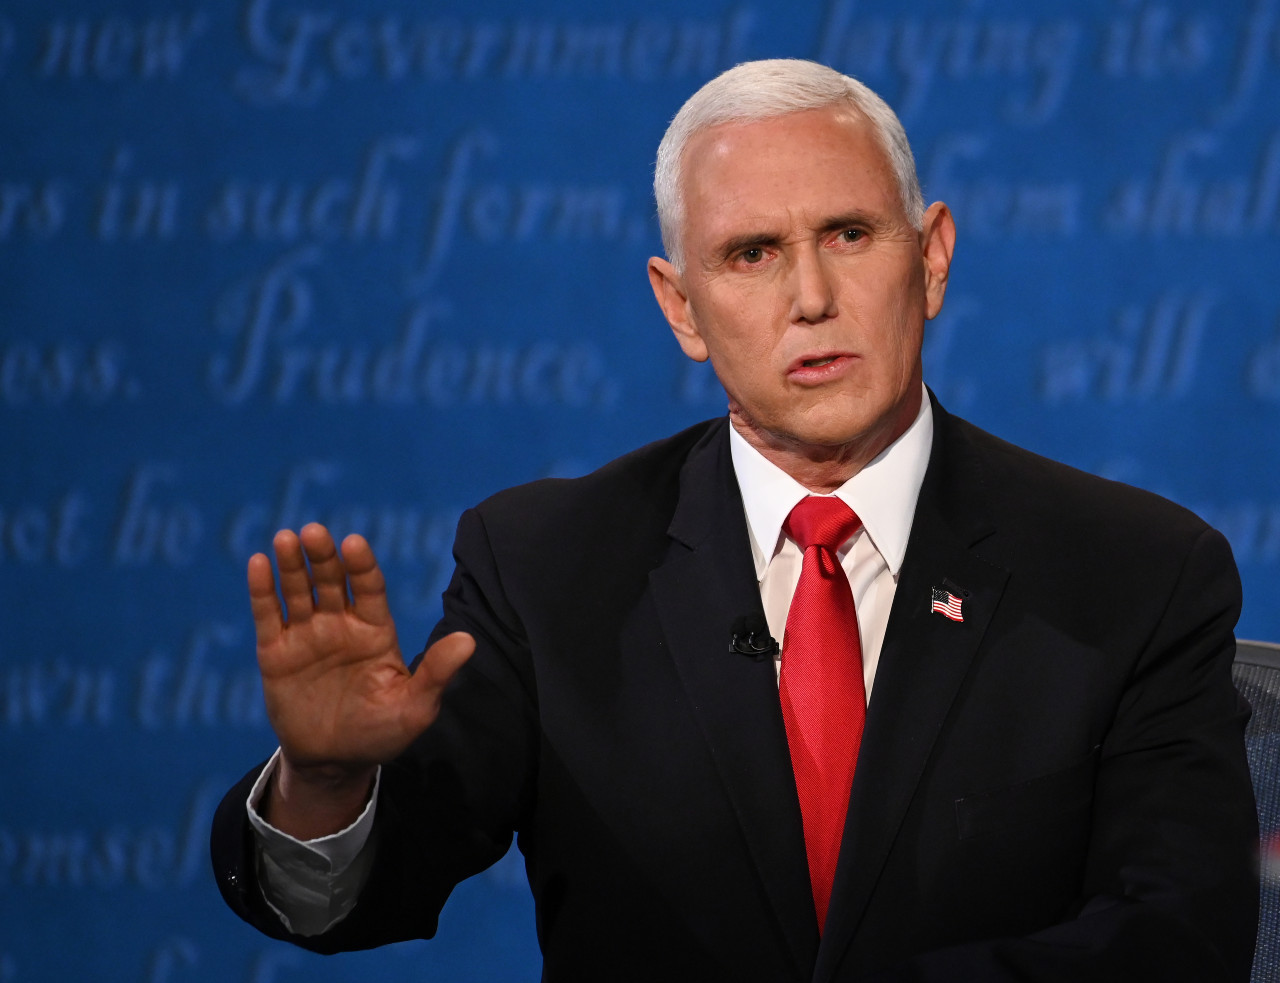 Mike Pence rejects invoking 25th Amendment to oust Trump